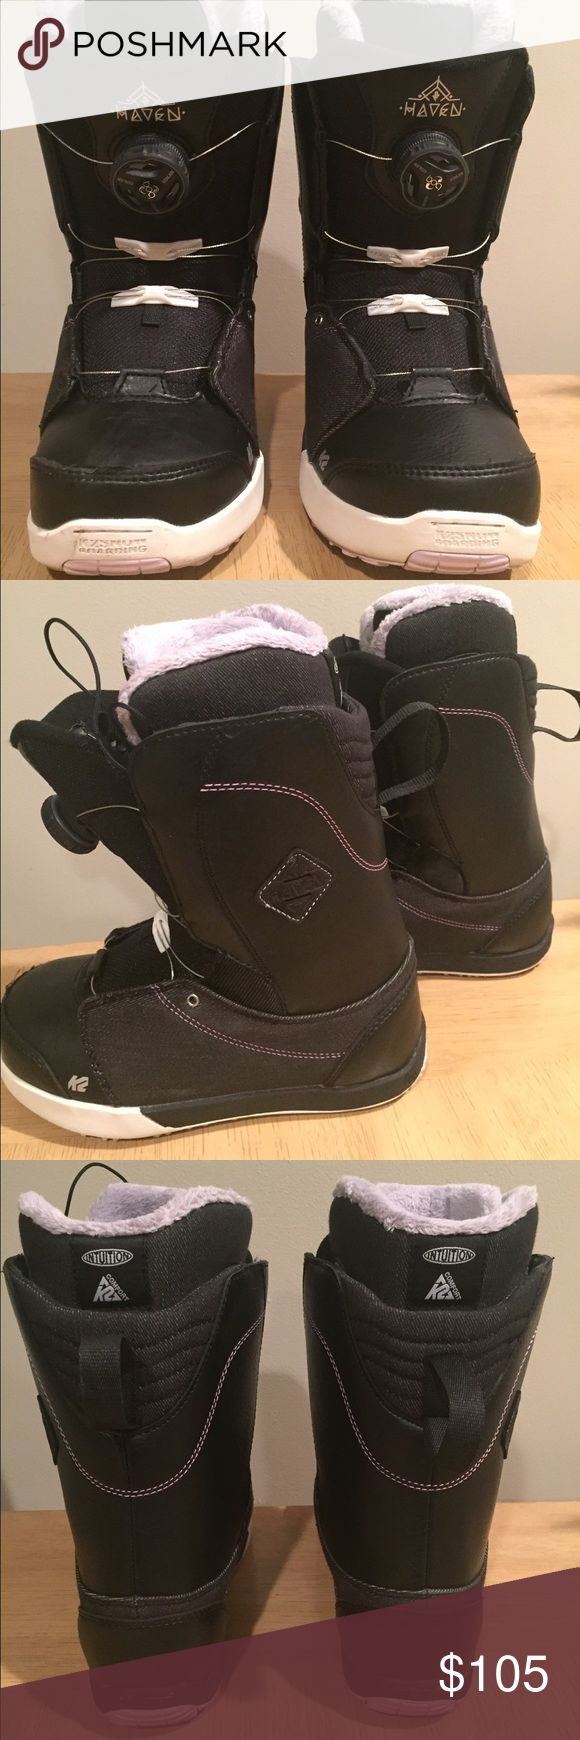 K2 Haven Women's Black Boa Snowboard Boots Excellent condition, worn twice for a few hours. Women's size 5, also fits youth/kids size 3/3.5. Original price: $199.95 K2 Shoes Winter & Rain Boots